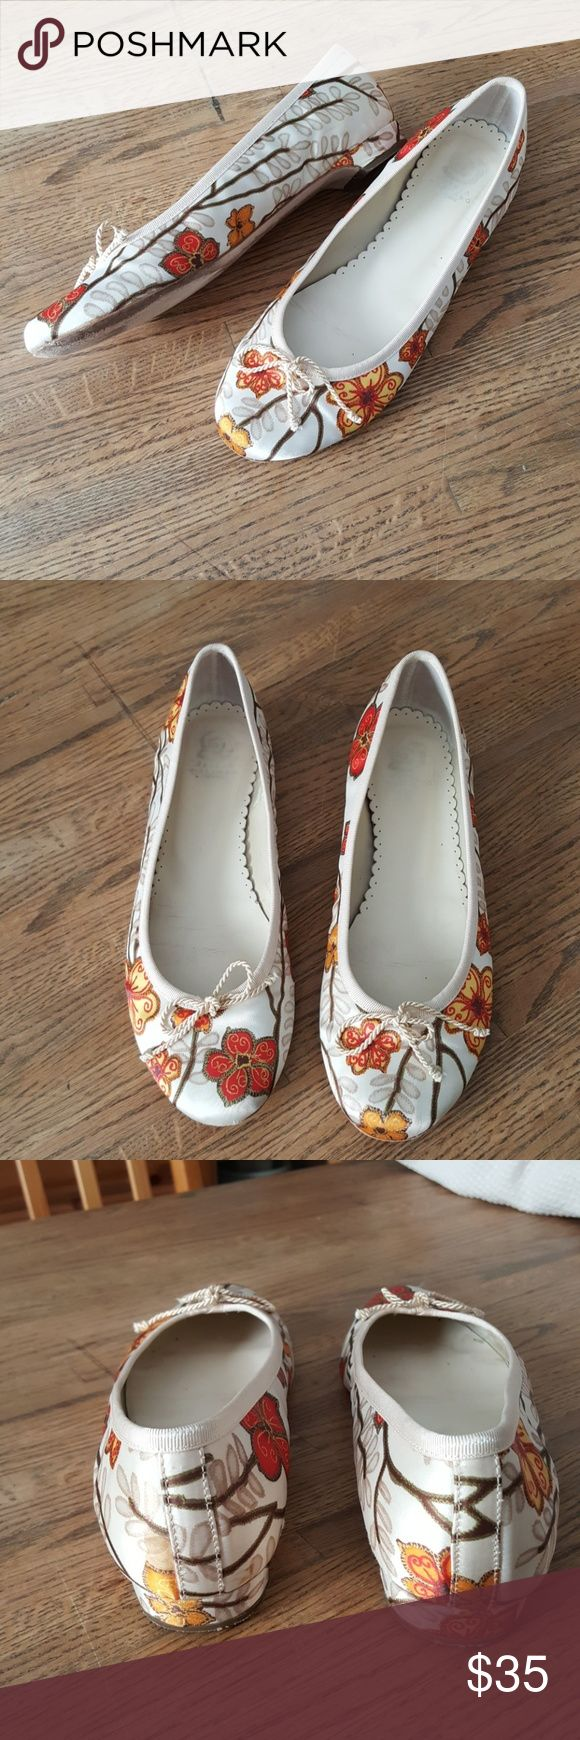 Ursula Mascaro silky floral ballet flats These shoes are adorable and in very good used condition. These add a little pop of color when worn with a solid color bottom. Exterior is a satiny silky cream color floral printed fabric with red, tan, brown, orange and yellow. Interior and sole are leather.  1/2 inch heel and corded tie at the front. Quality designer construction and comfortable to wear. Ursula Mascaro Shoes Flats & Loafers